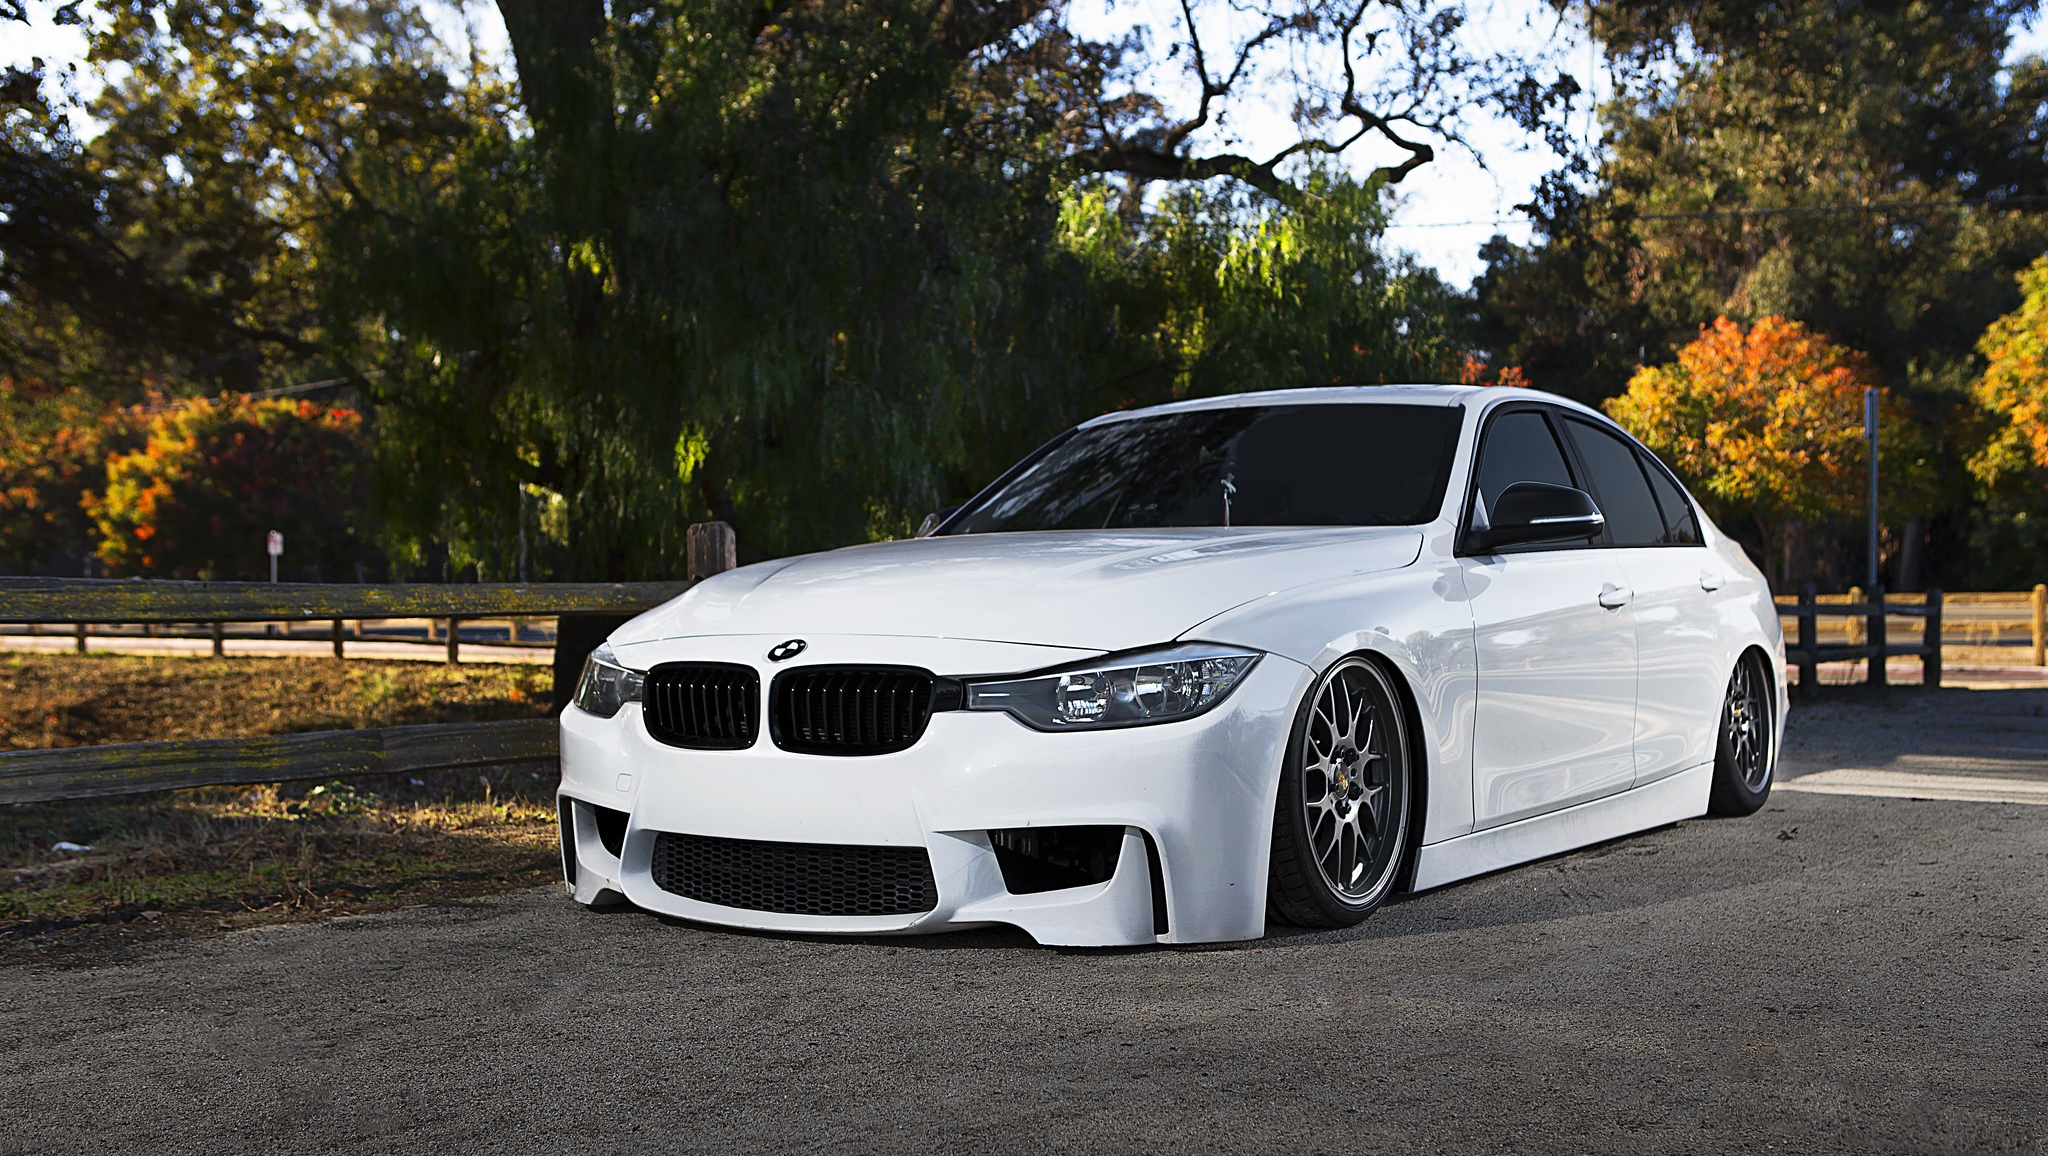 New Performance Air Suspension For Bmw F30 3 Series